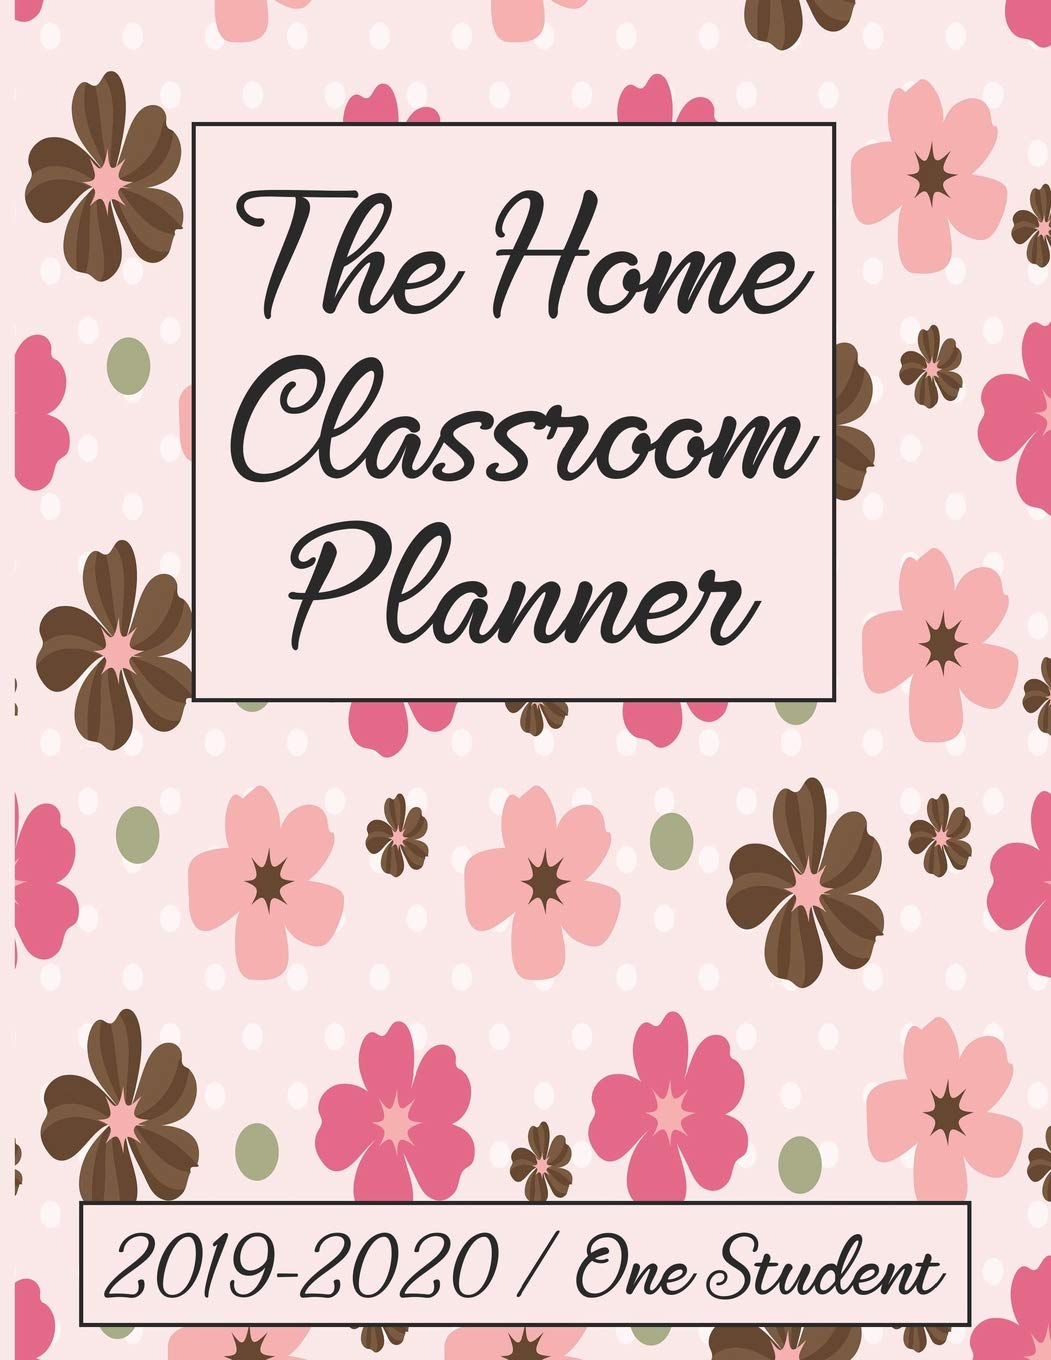 The home classroom plan. Planner clipart curriculum planning